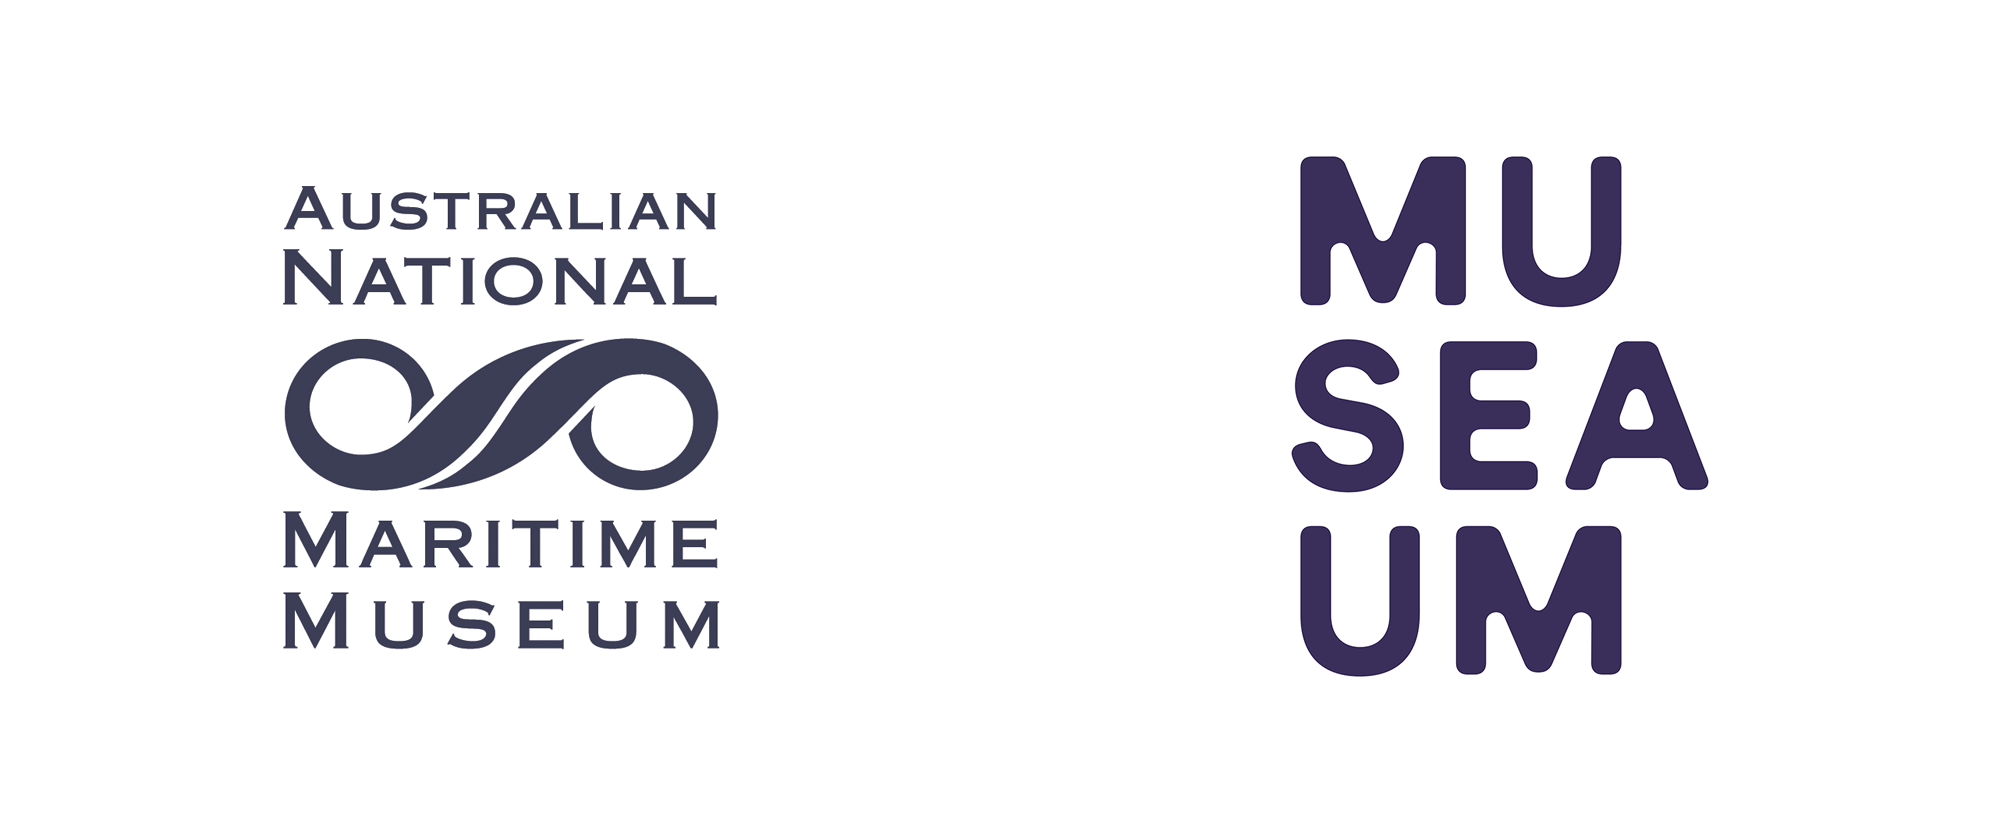 Australian_National_Maritime_Museum_Logo_before_after.png